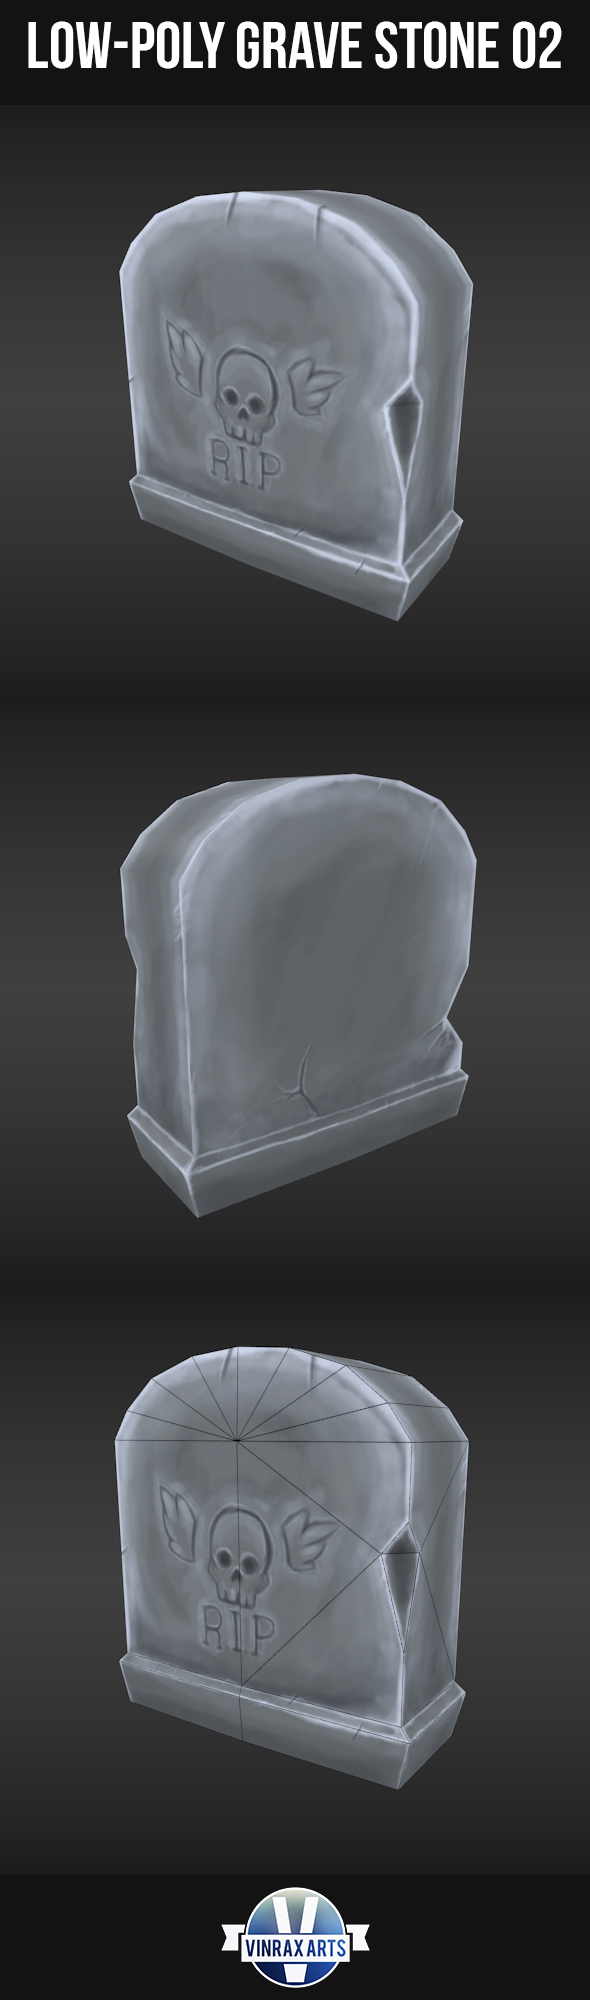 Low-Poly Grave Stone 02 - 3DOcean Item for Sale